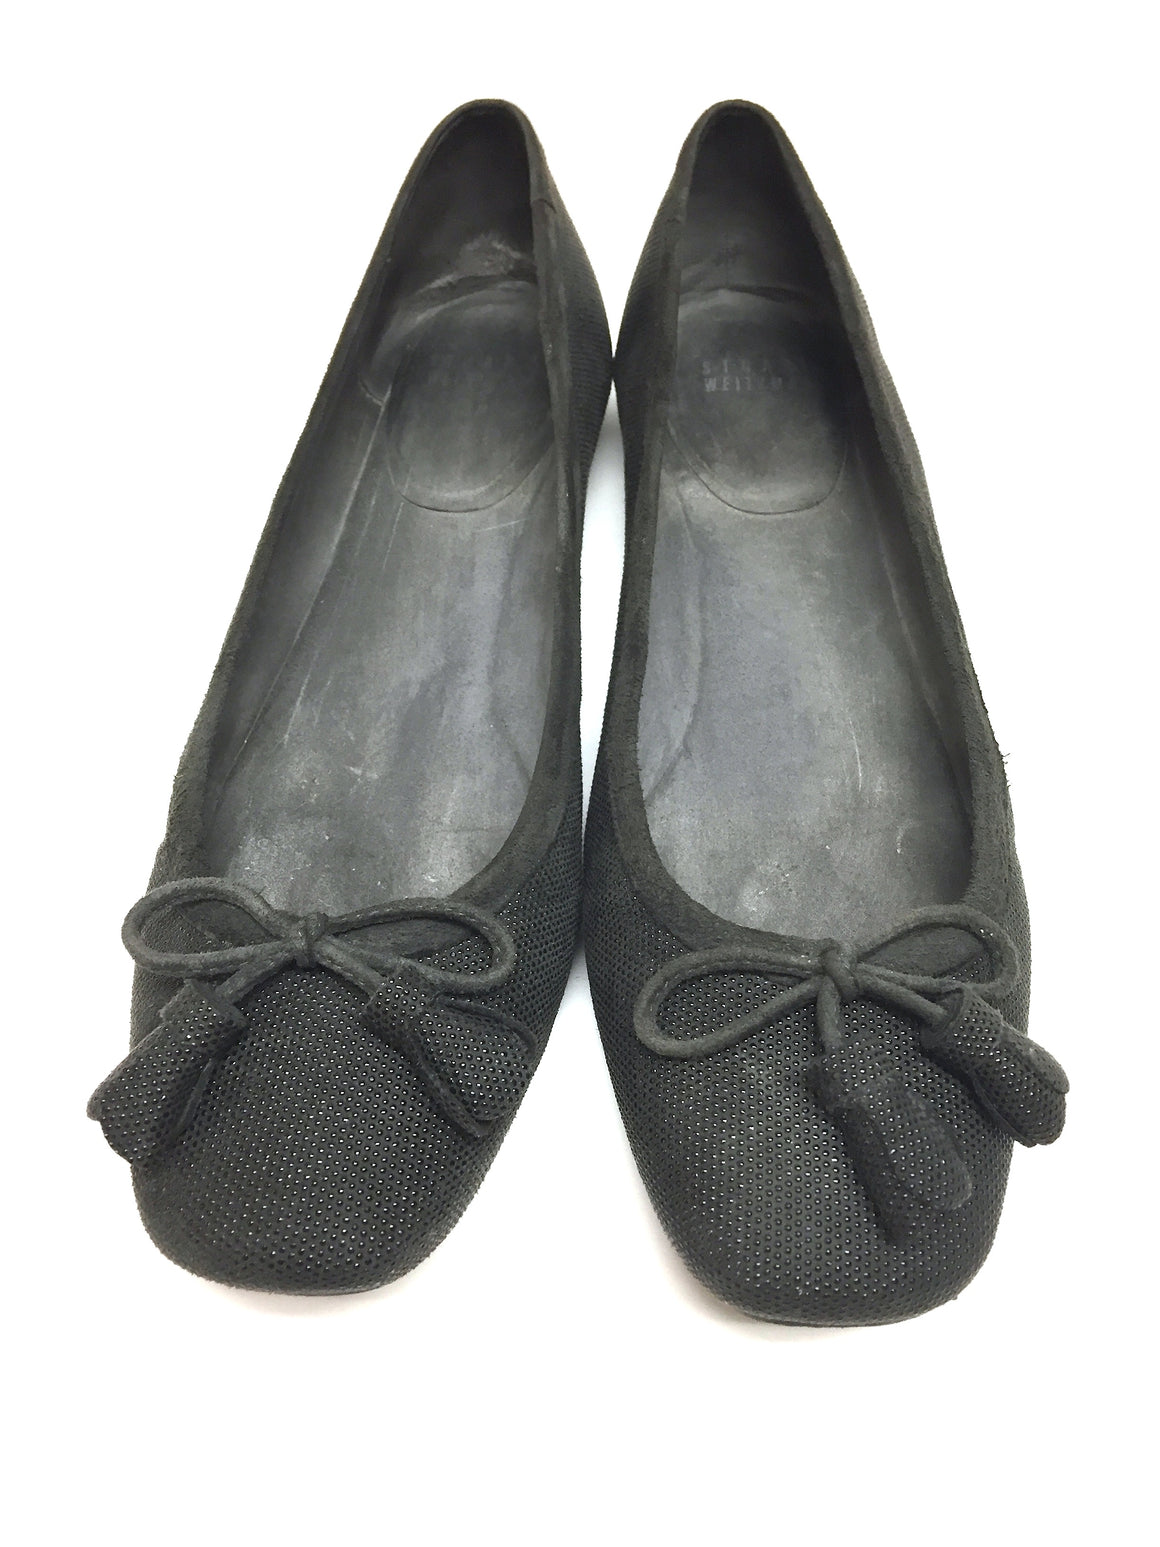 STUART WEITZMAN Charcoal-Gray Goose Bumps Napa Leather Ballet Flats Shoes Size: 9M